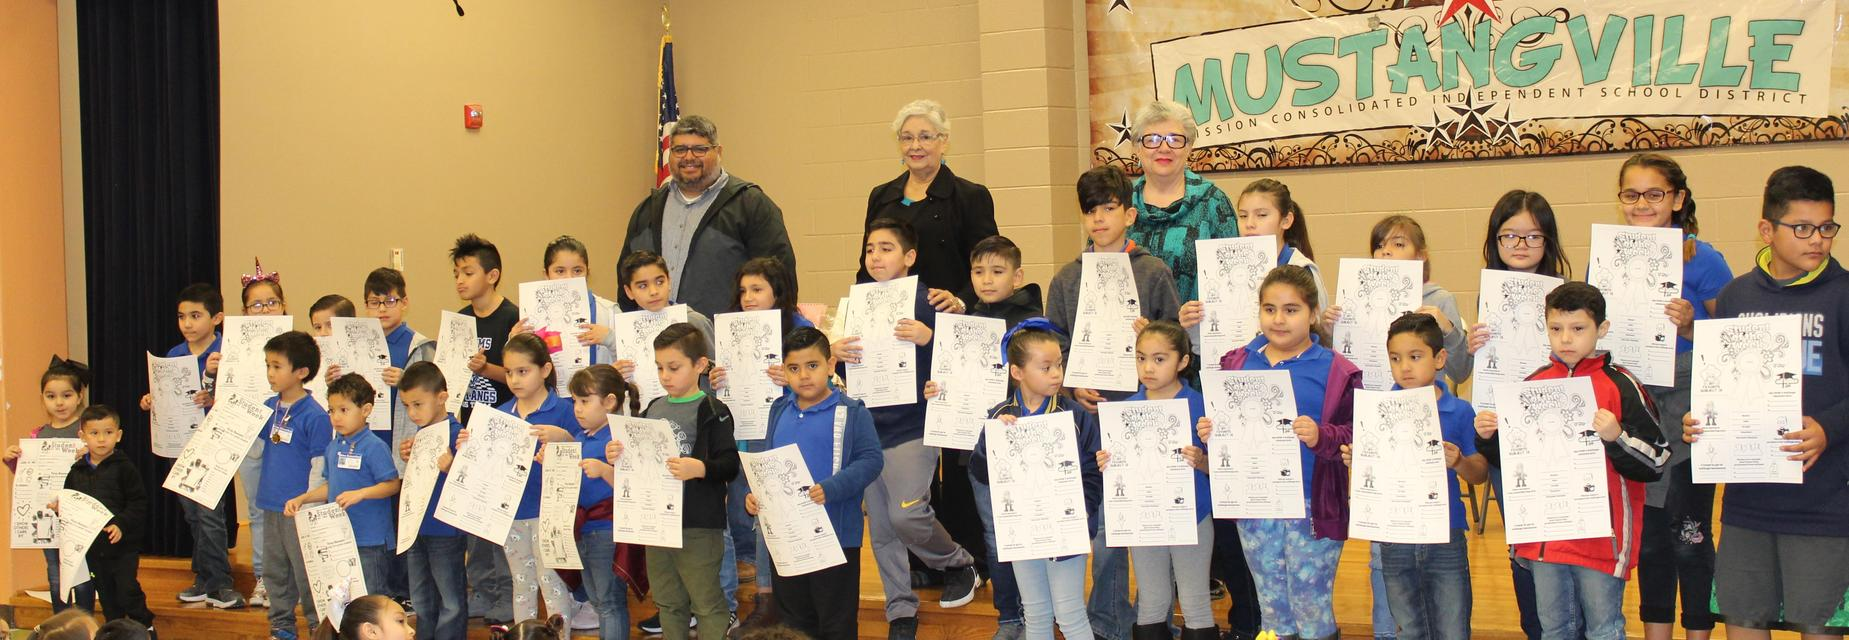 students with Student of the week posters and school board members